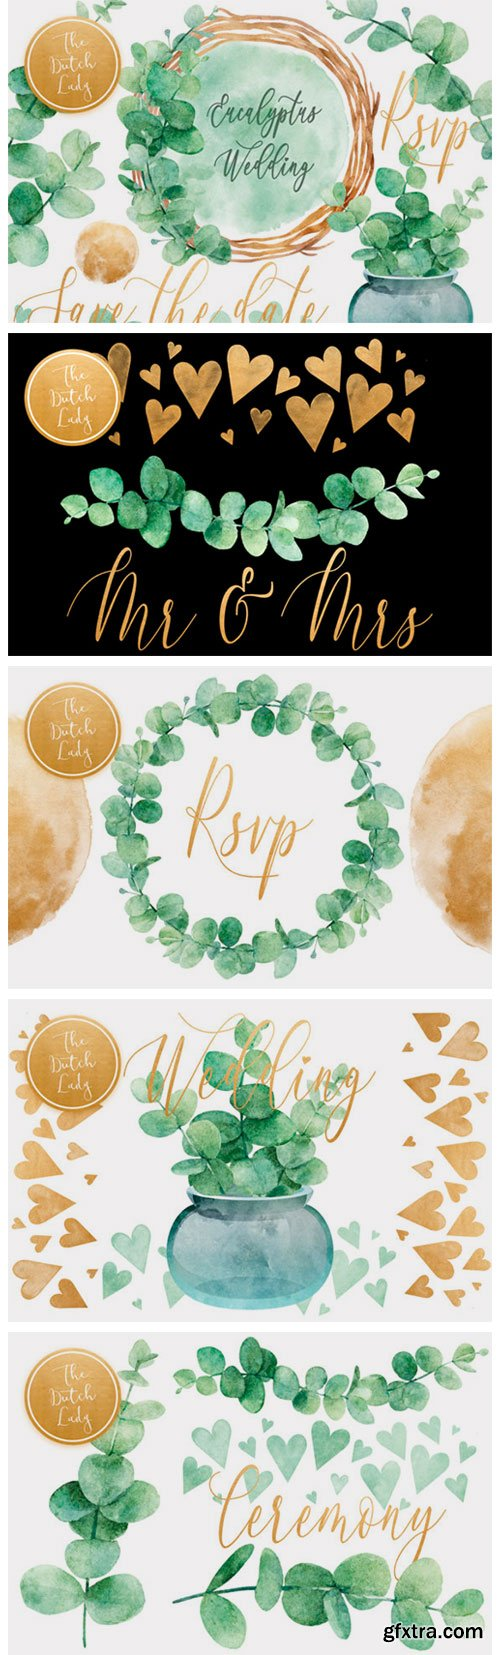 Eucalyptus Wedding Card Clipart Set 2769412